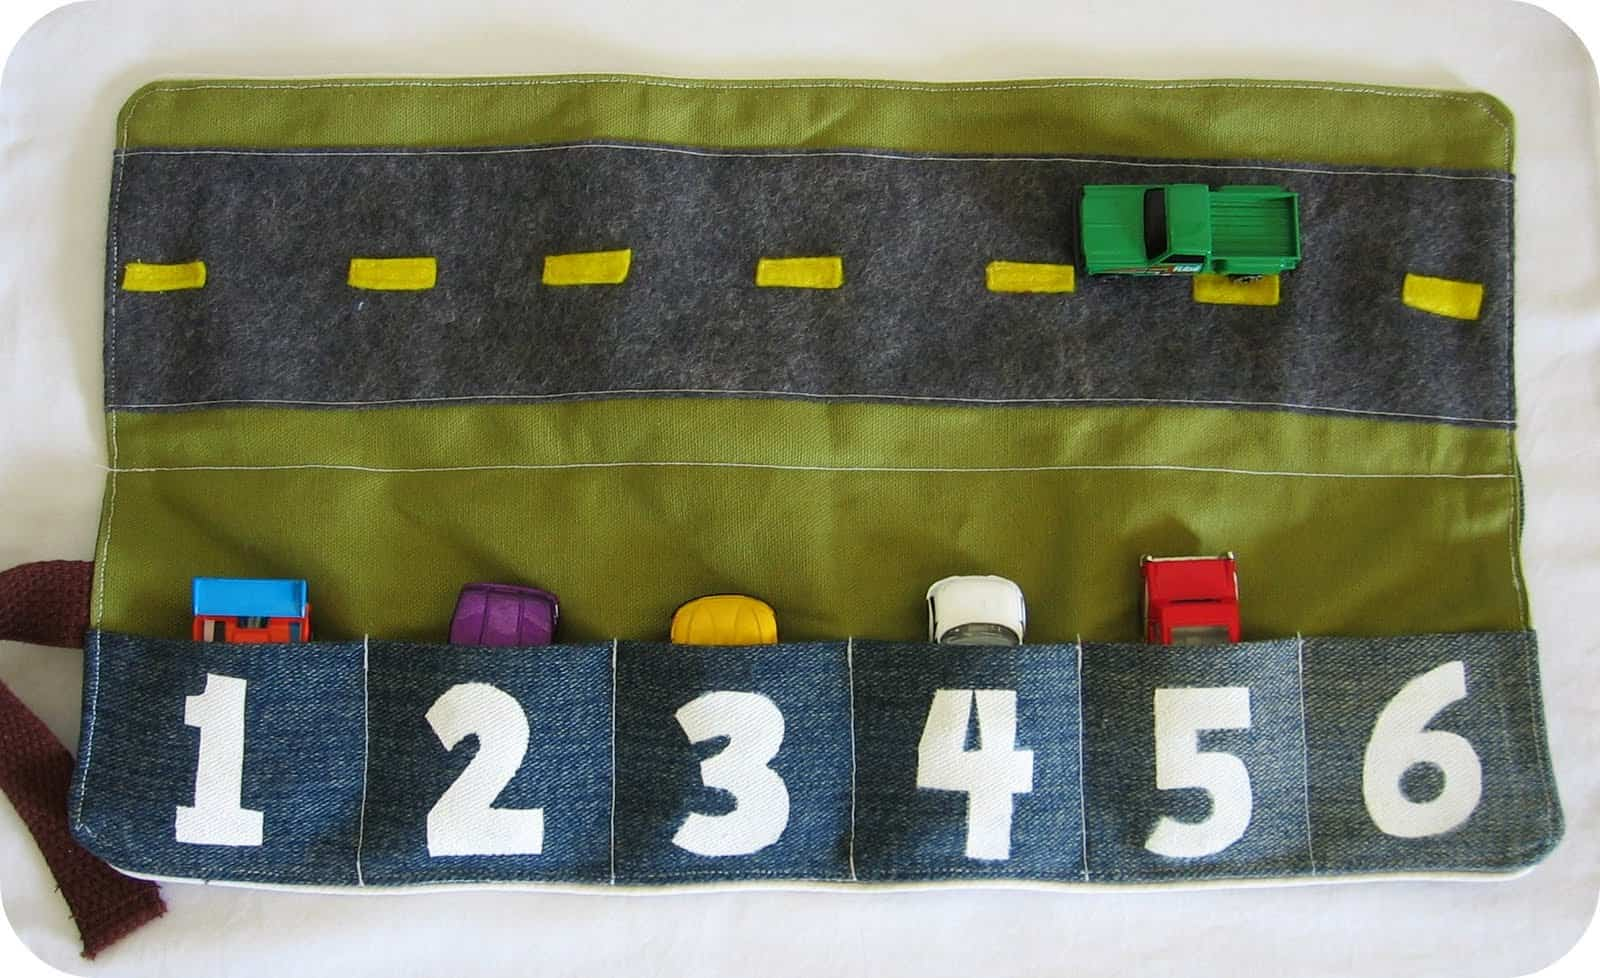 Toy card caddy with numbers and a road